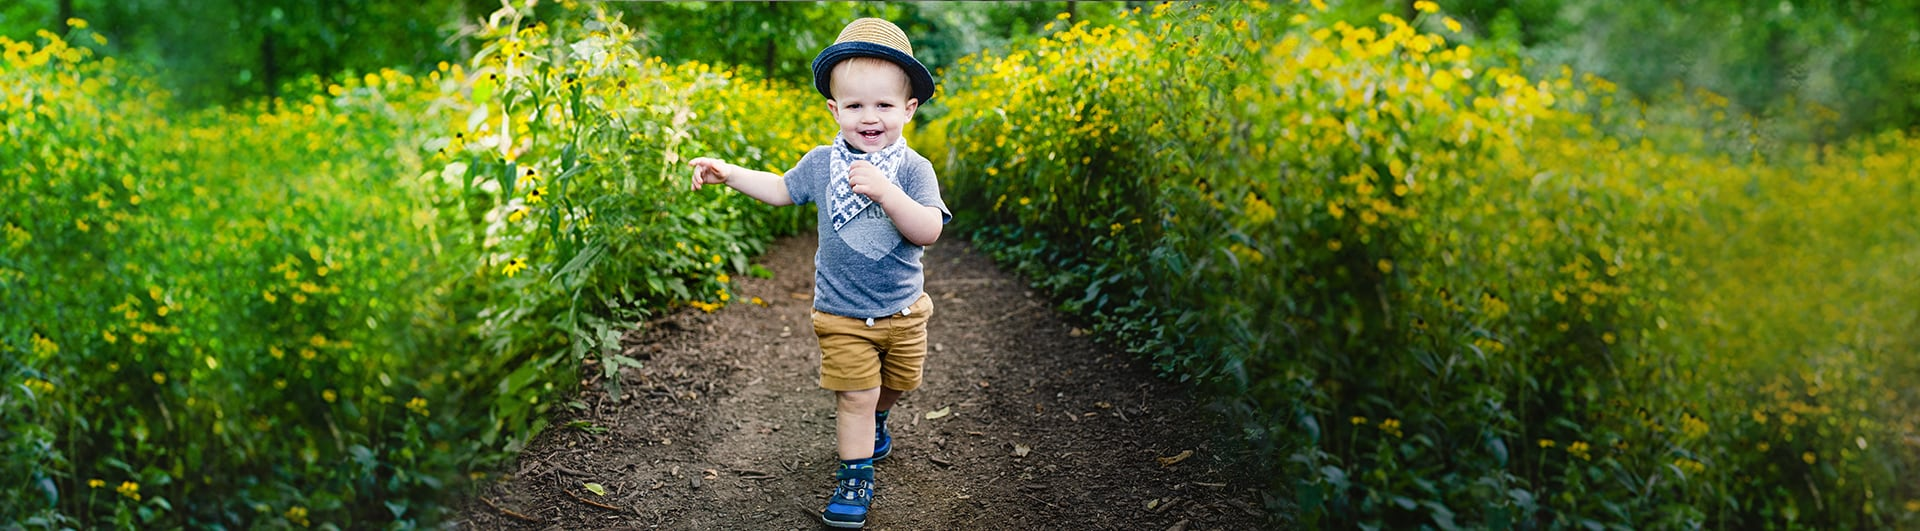 A smiling toddler hiking down a trail.